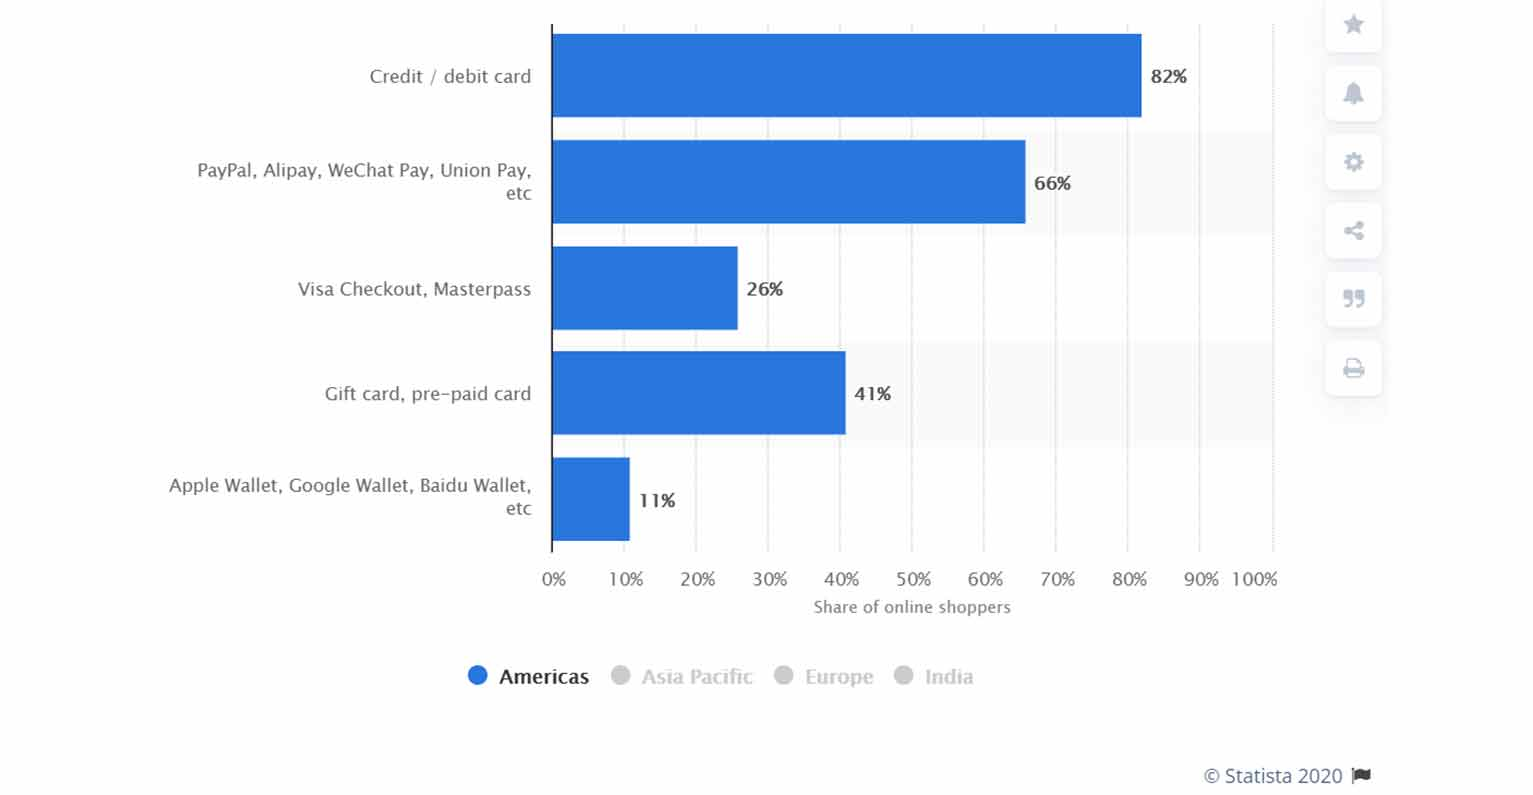 While credit and debit cards are still the most preferred payment methods for U.S. shoppers, a large portion likes the freedom to pay with third-party platforms.